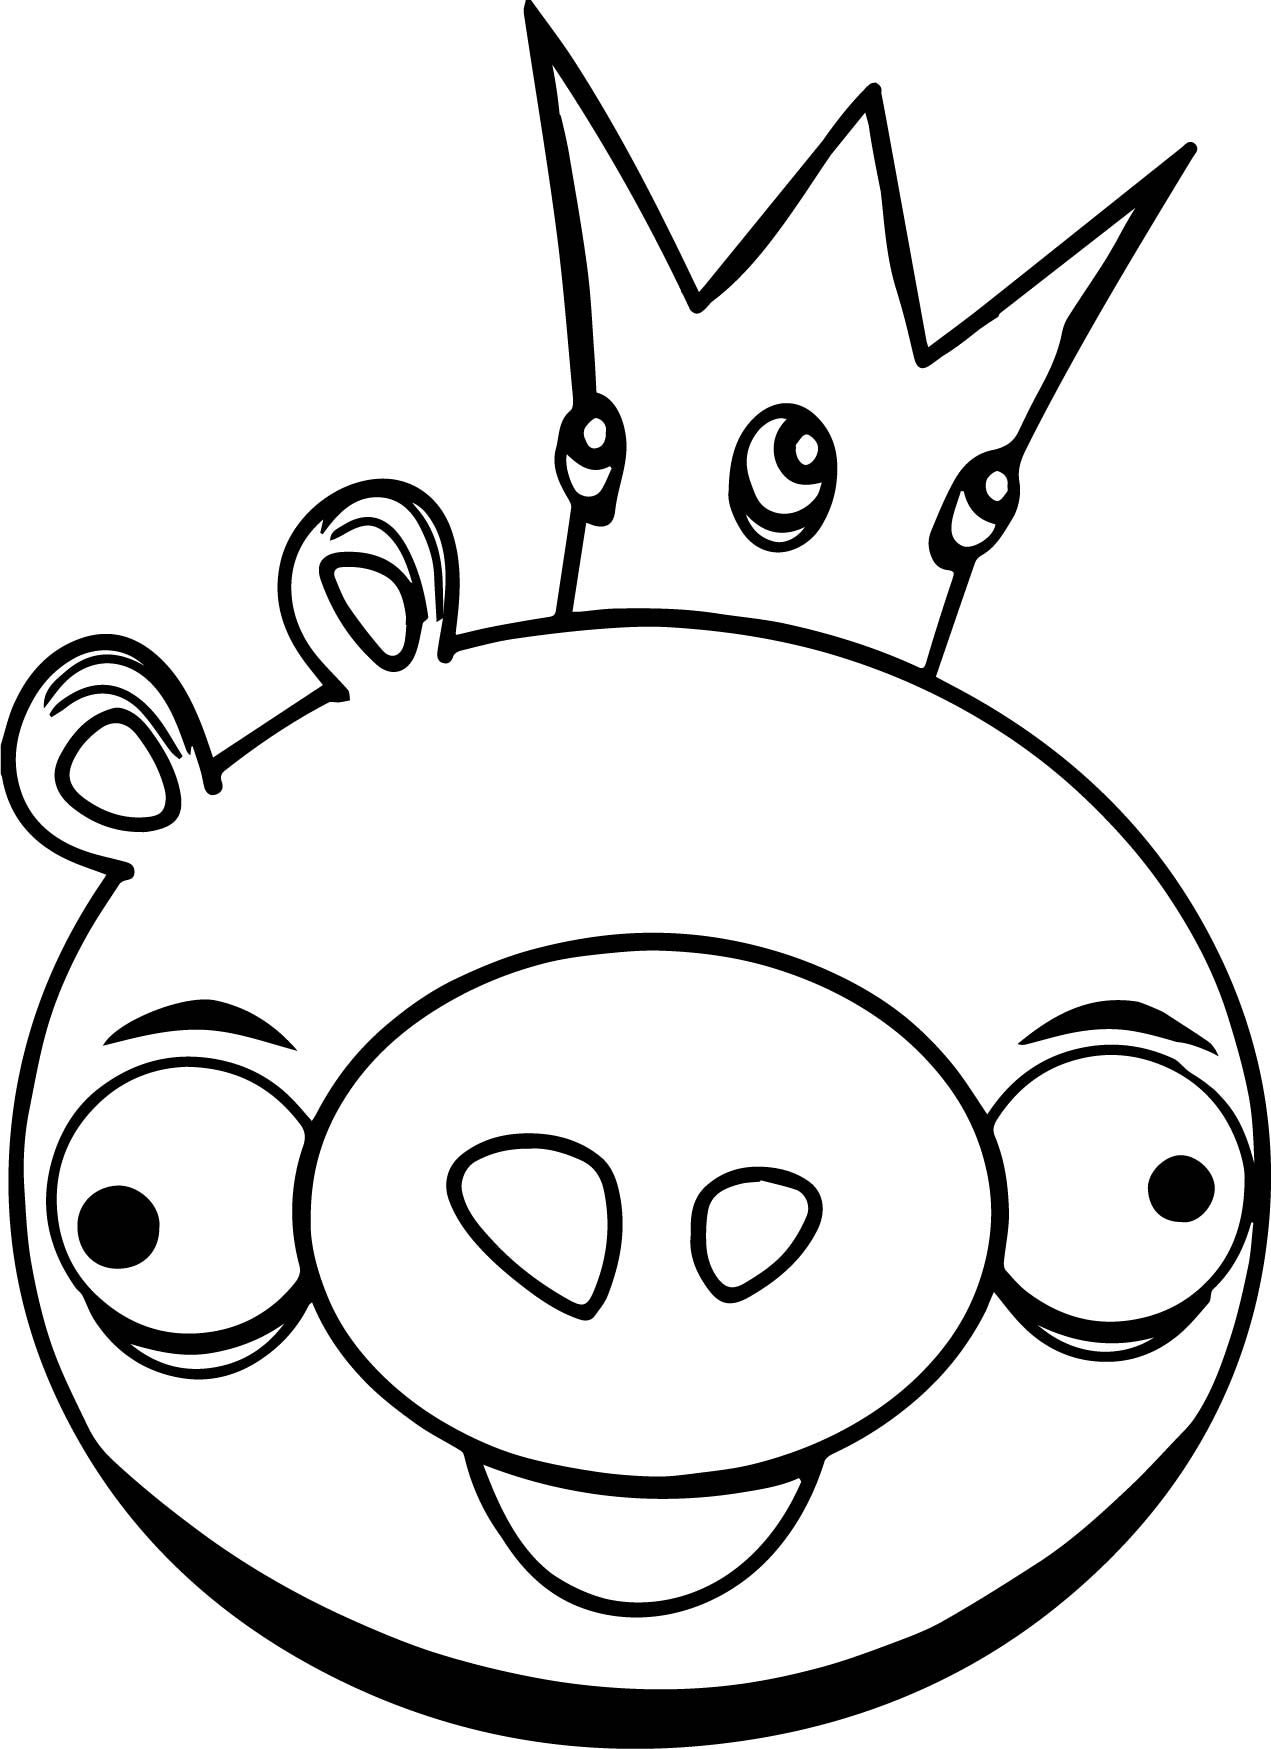 king pig coloring page king pig in angry bird coloring page kids play color coloring king page pig